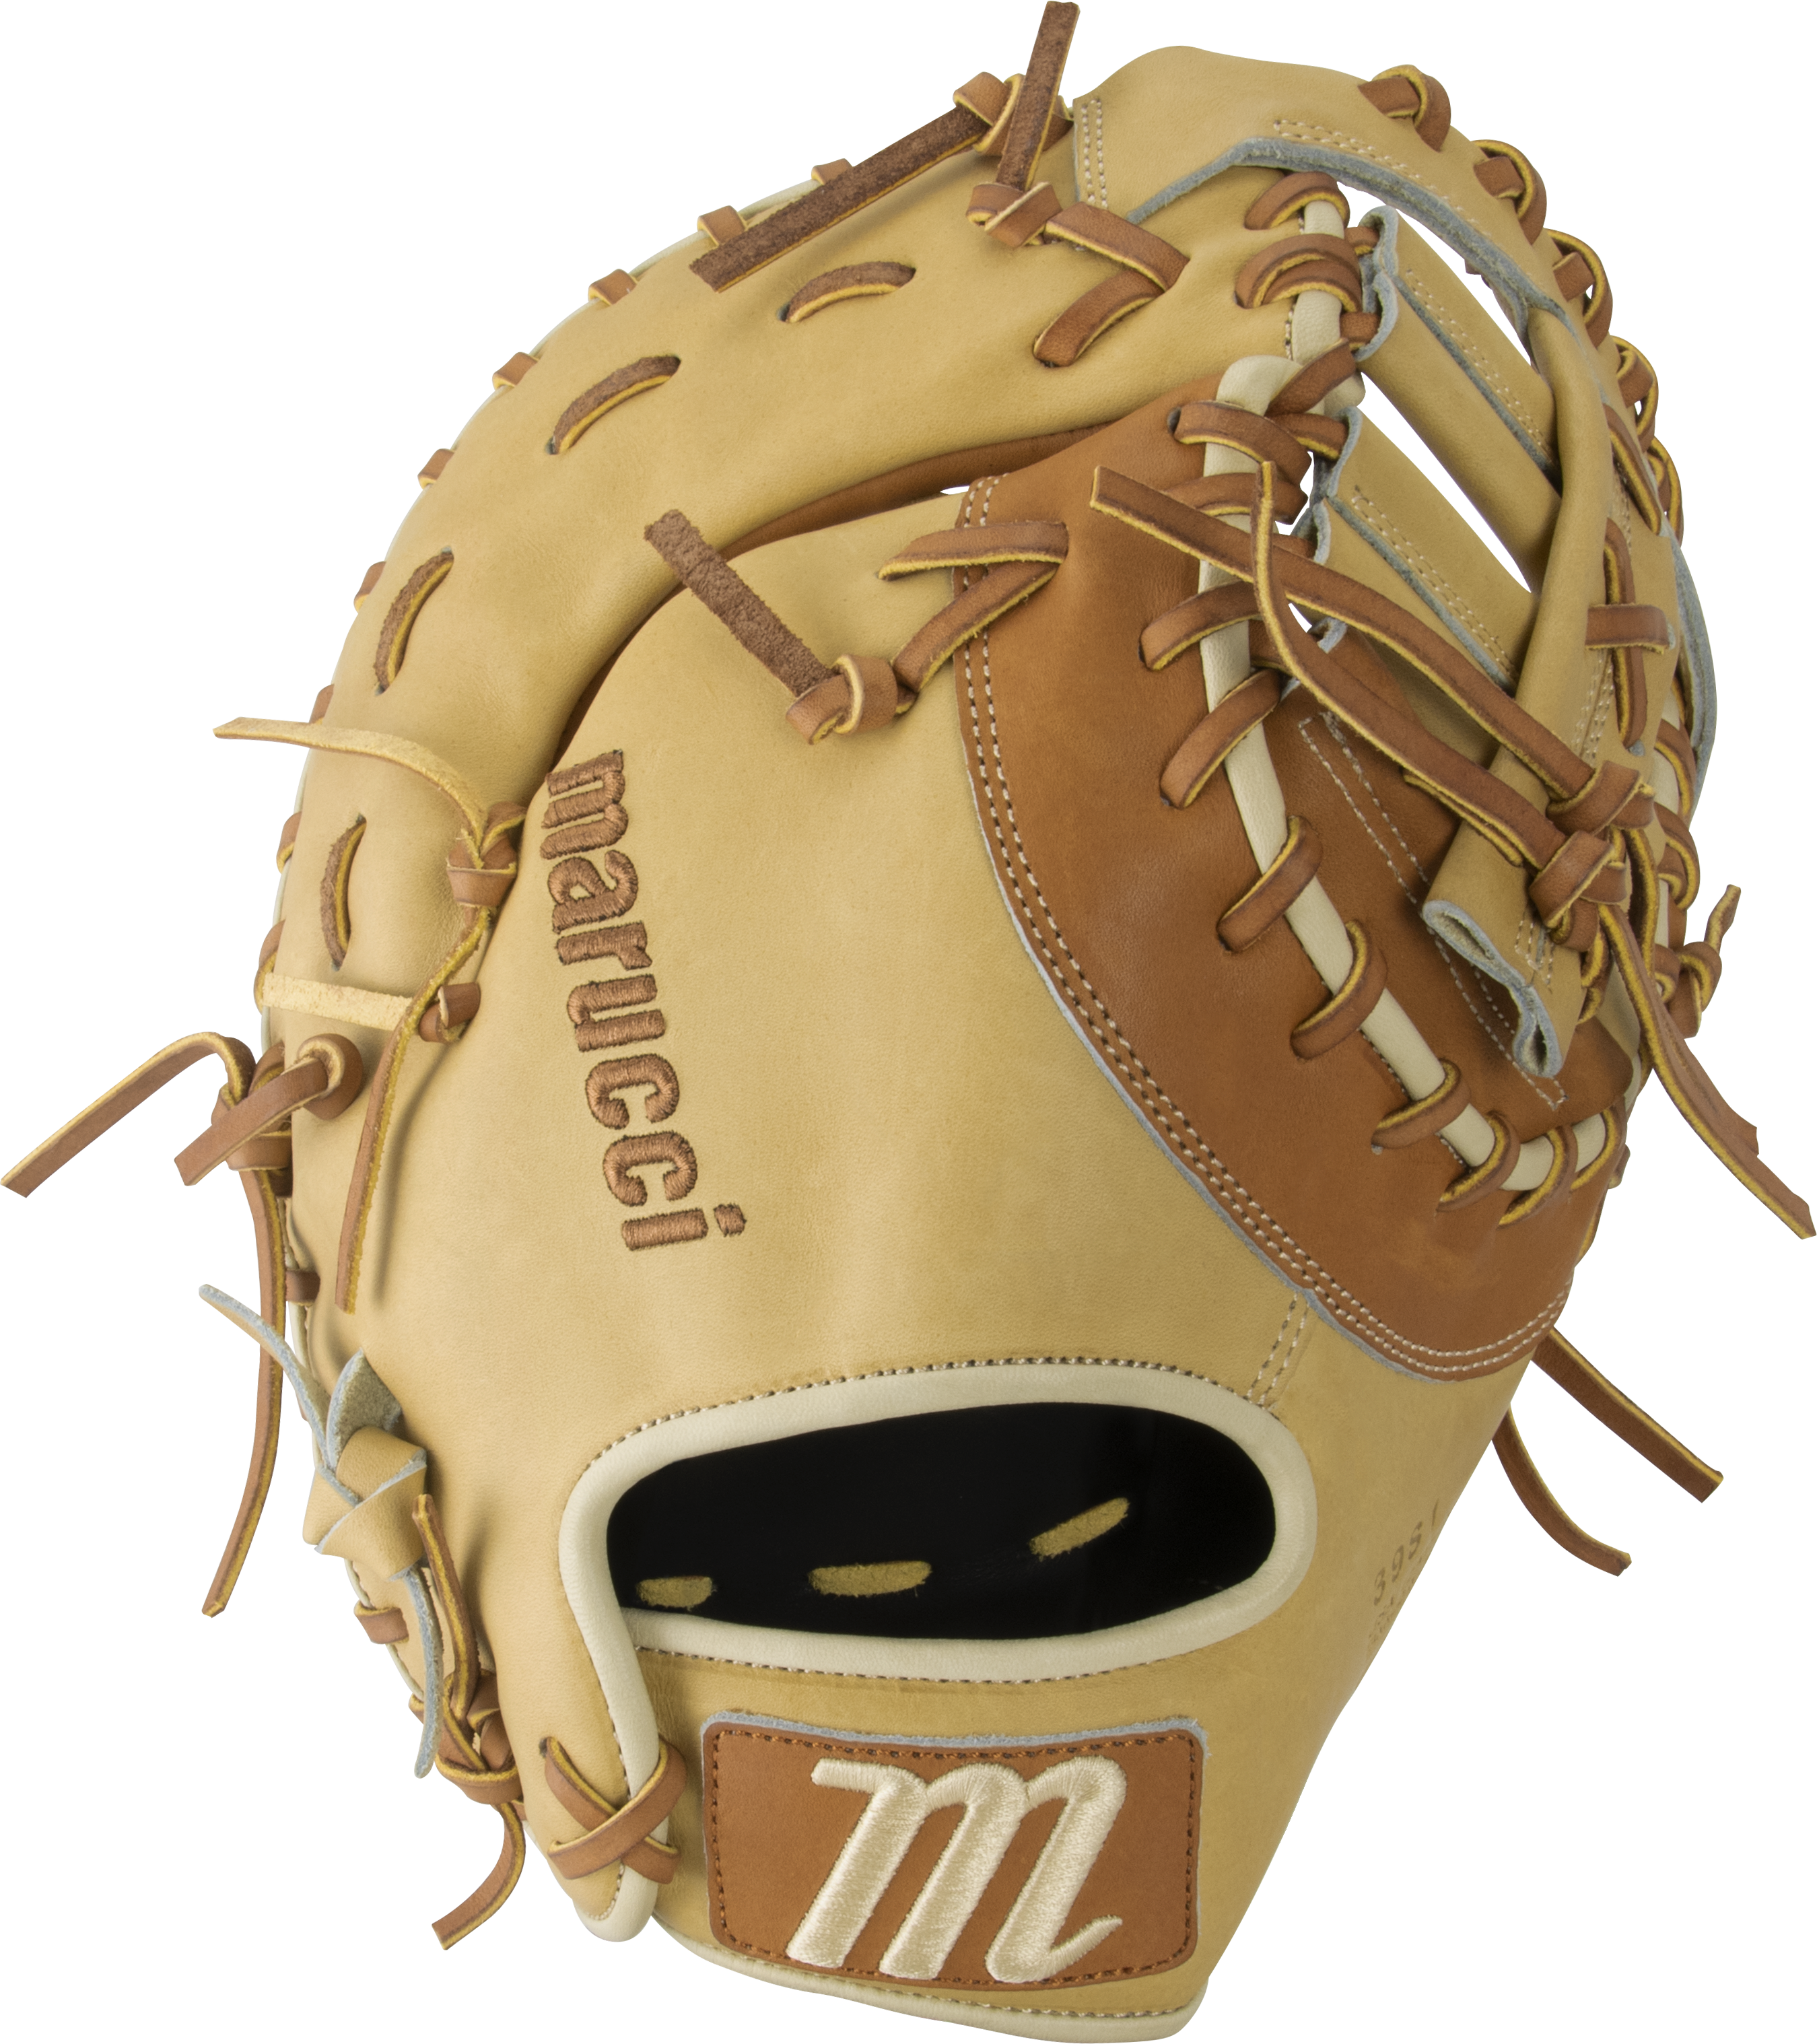 marucci-cypress-13-baseball-glove-39s1-first-base-mitt-post-web-right-hand-throw MFGCY39S1-SMTF-RightHandThrow Marucci  849817099438 • Premium Japanese-tanned steerhide leather provides stiffness and rugged durability •